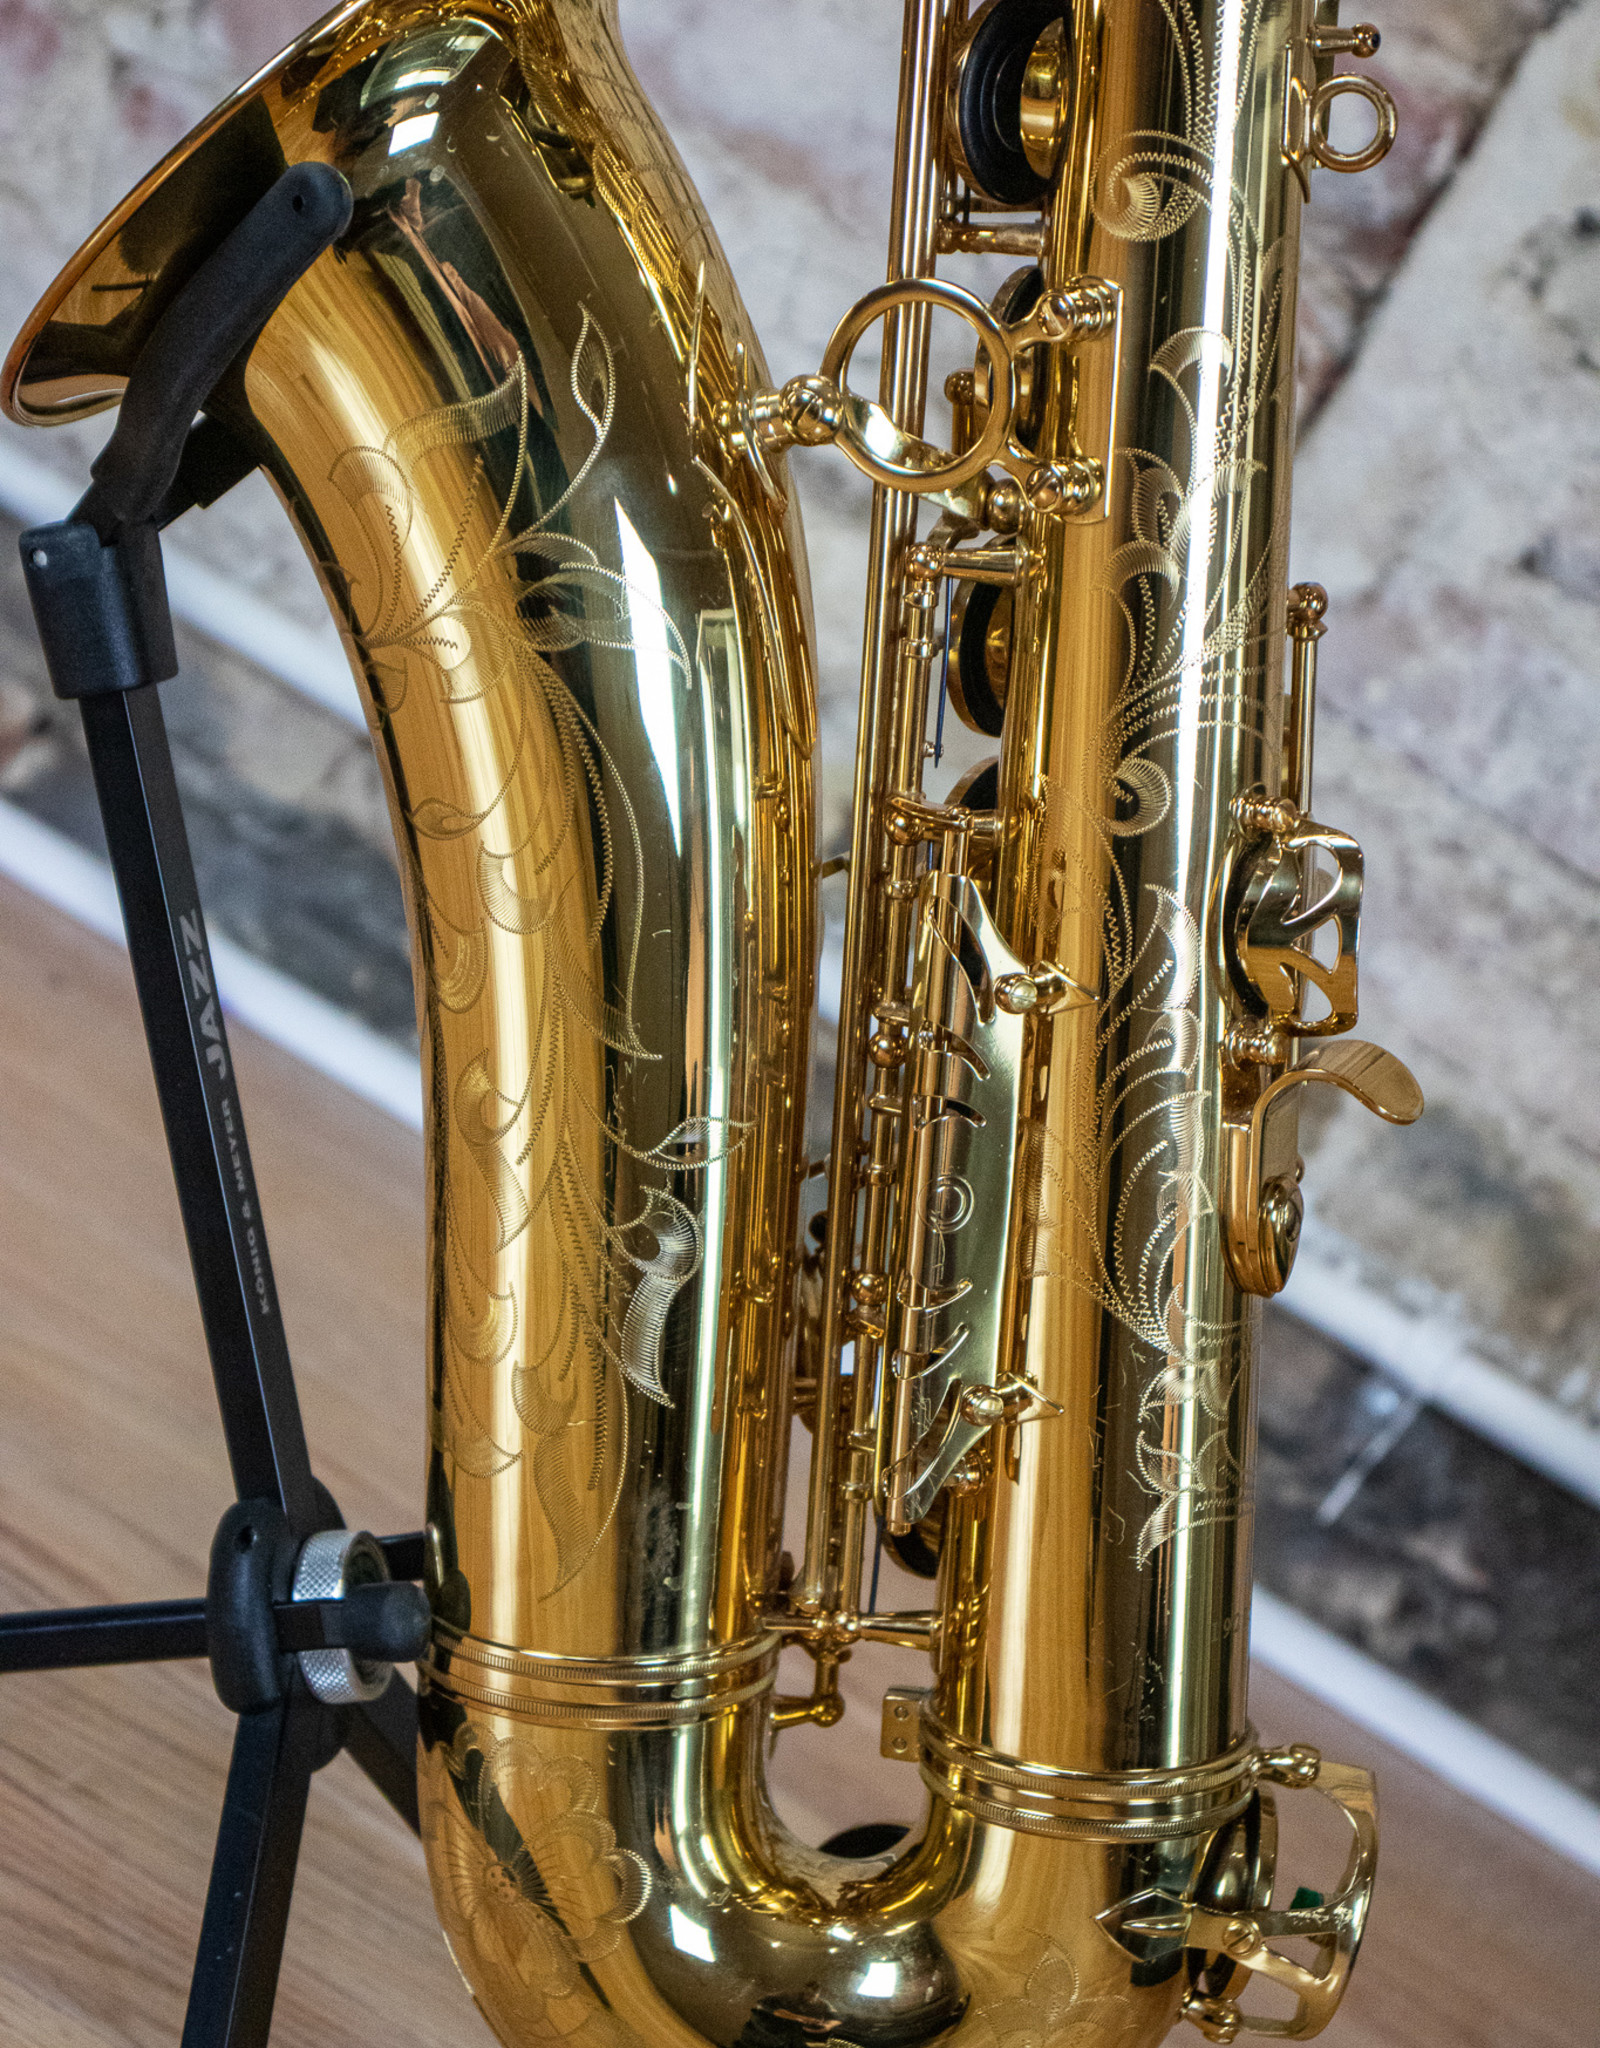 Used RW Intermediate Tenor saxophone